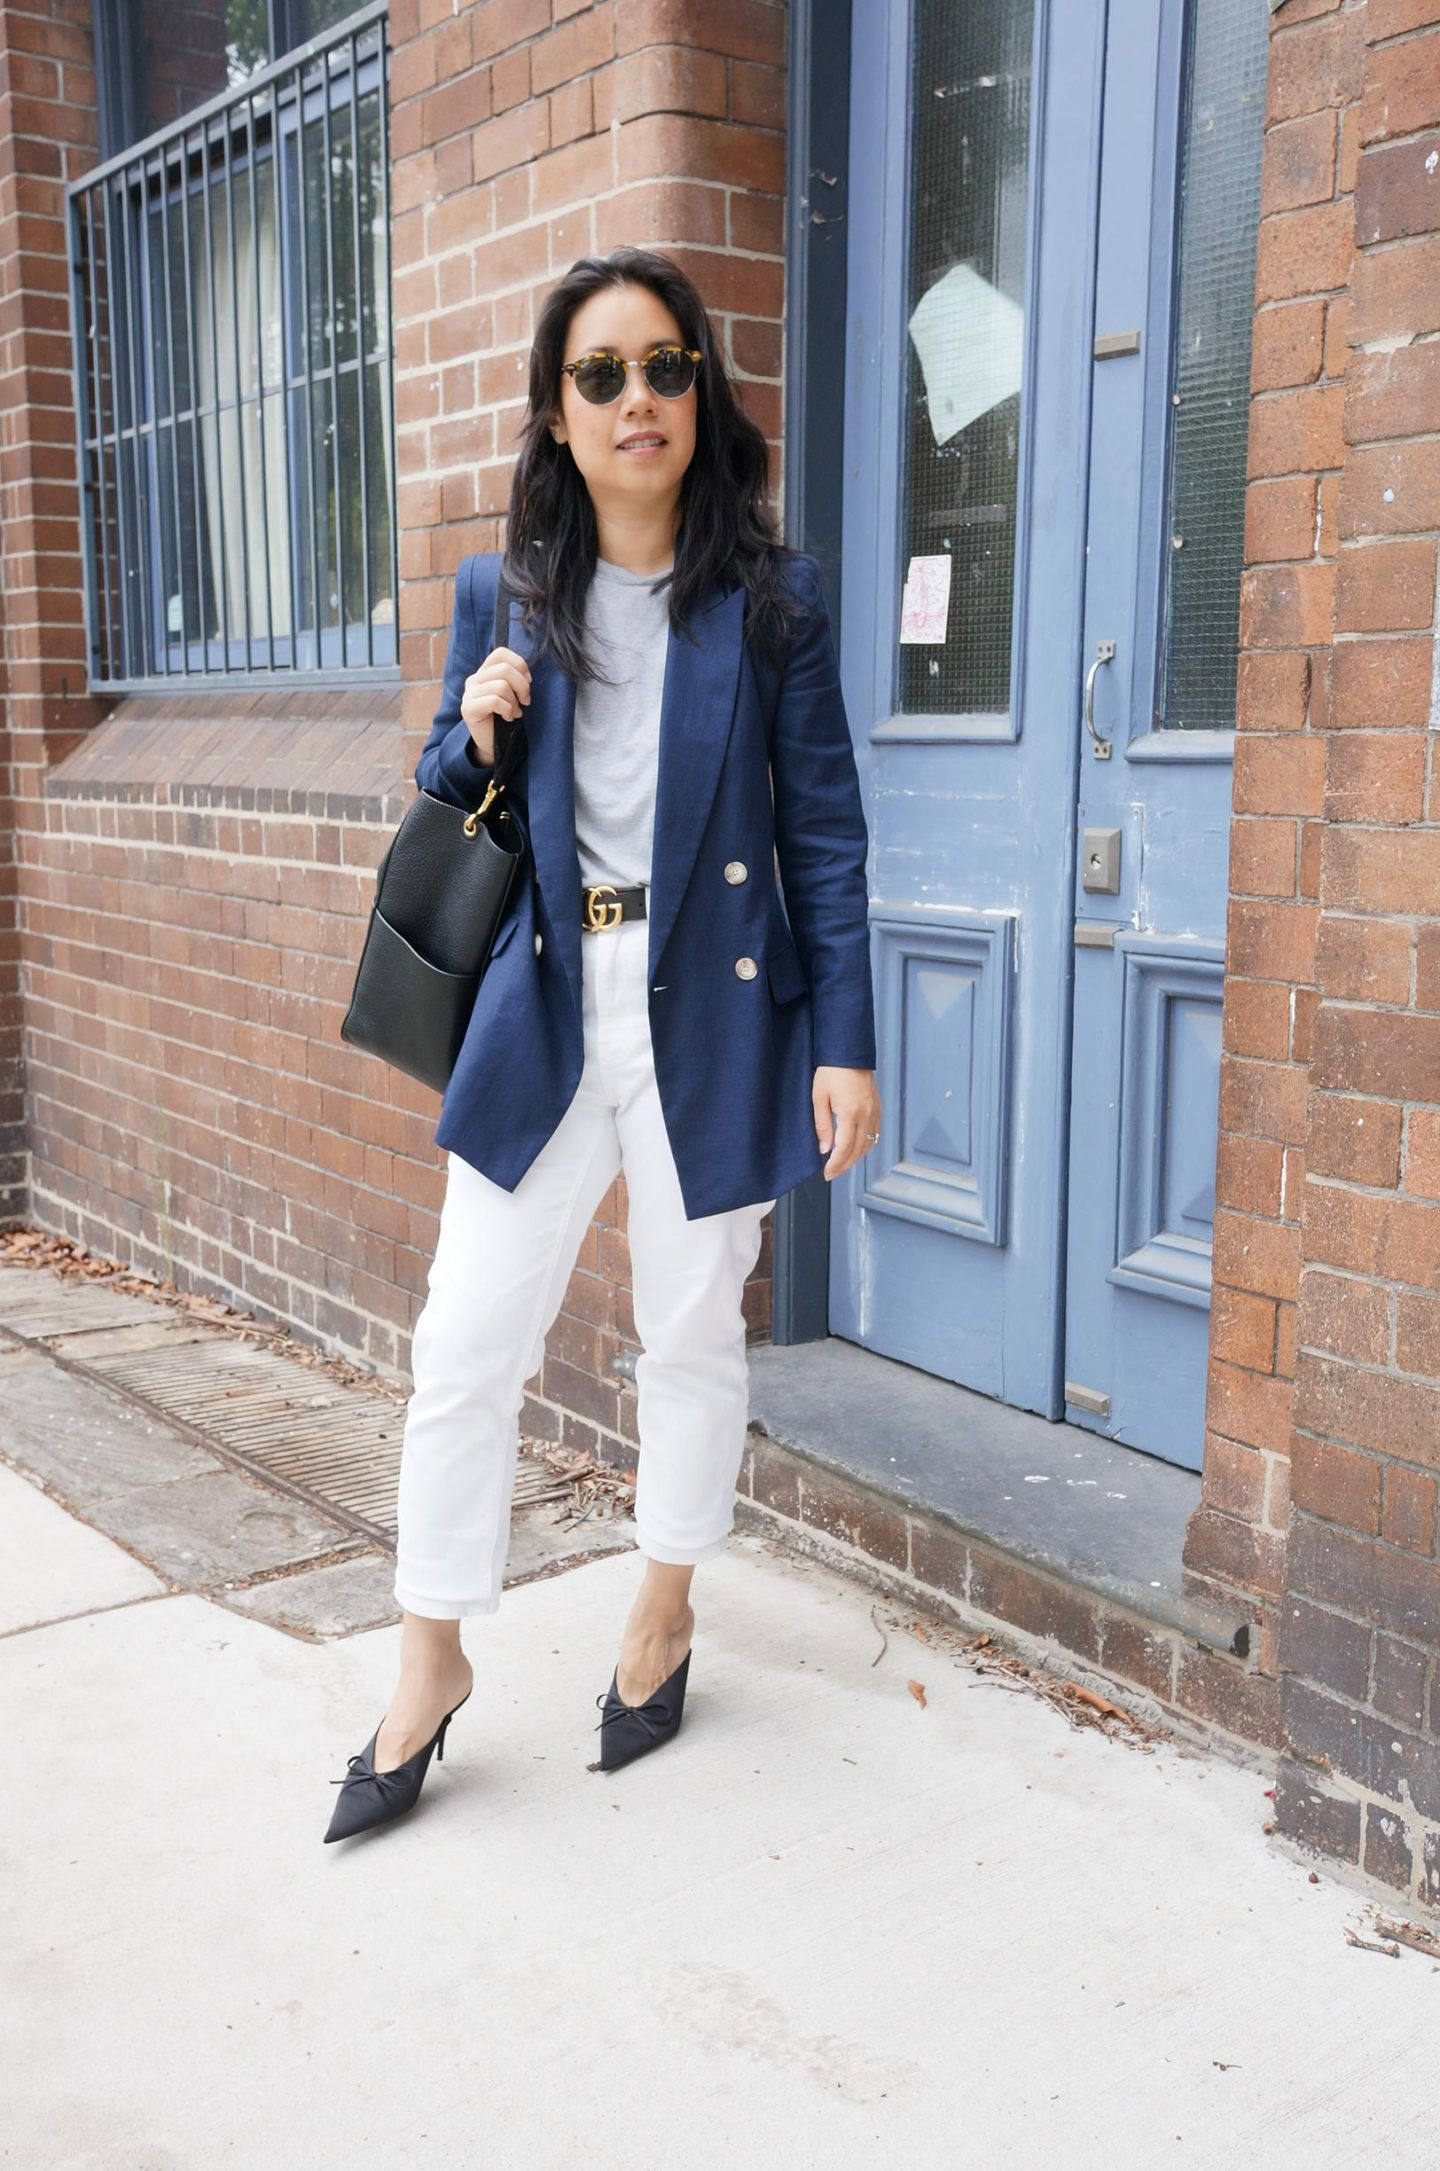 sarah lloyd duchess of cambridge blazer styled in smart casual outfit in blog post about first designer purchase tips